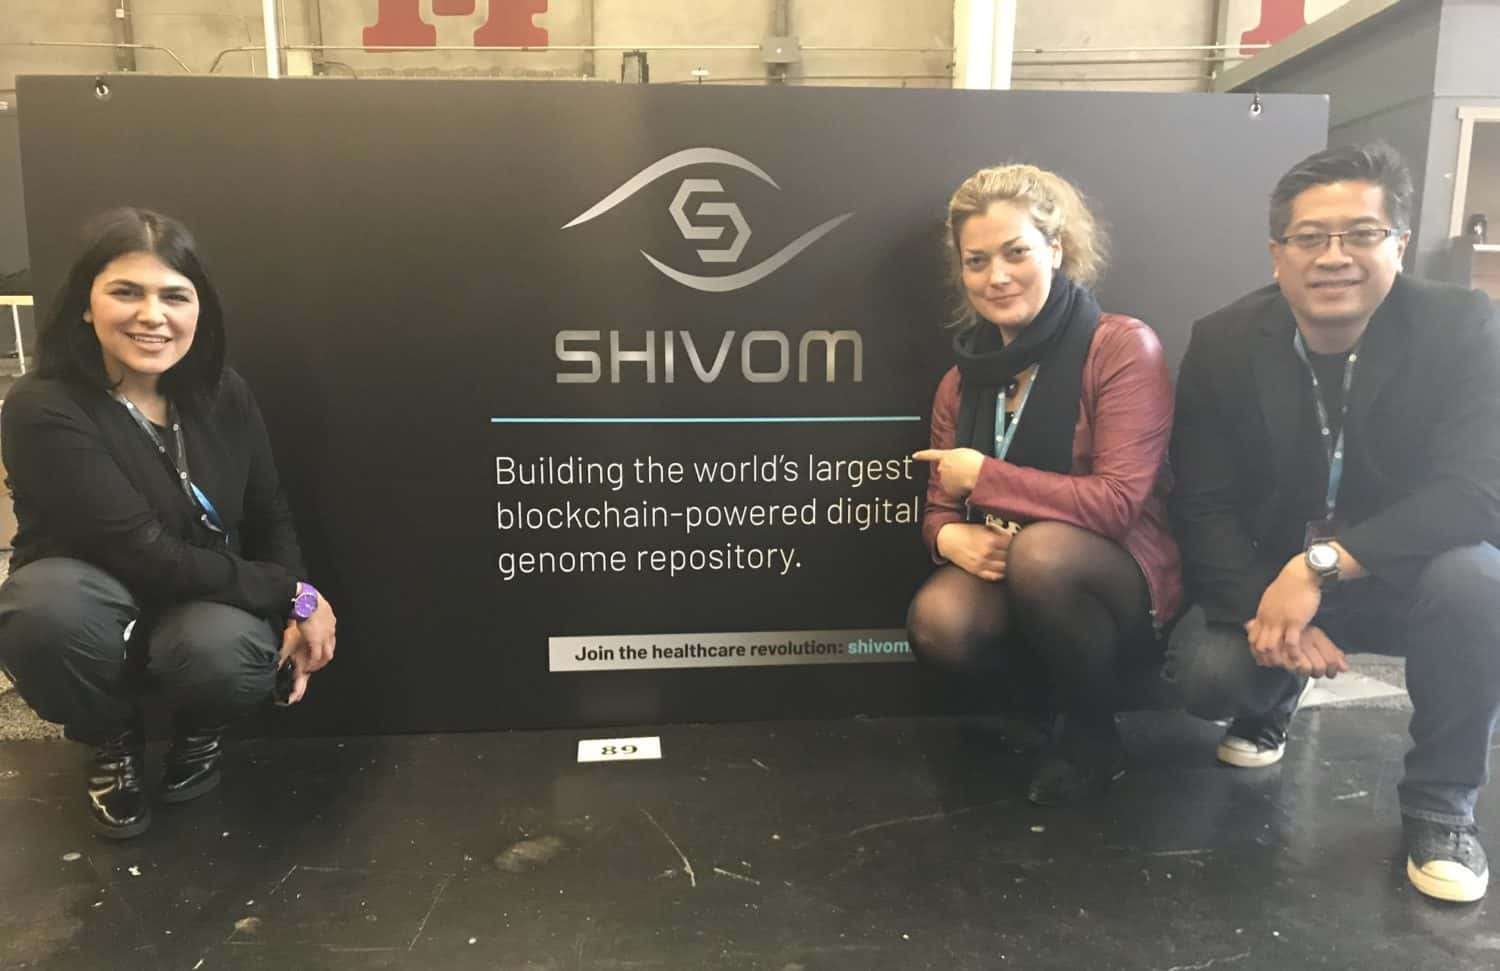 Azam Shaghaghi, Henry Ines and Natalie Pankova from the Shivom team, attending Token Fest. Source: twitter.com/ProjectShivom